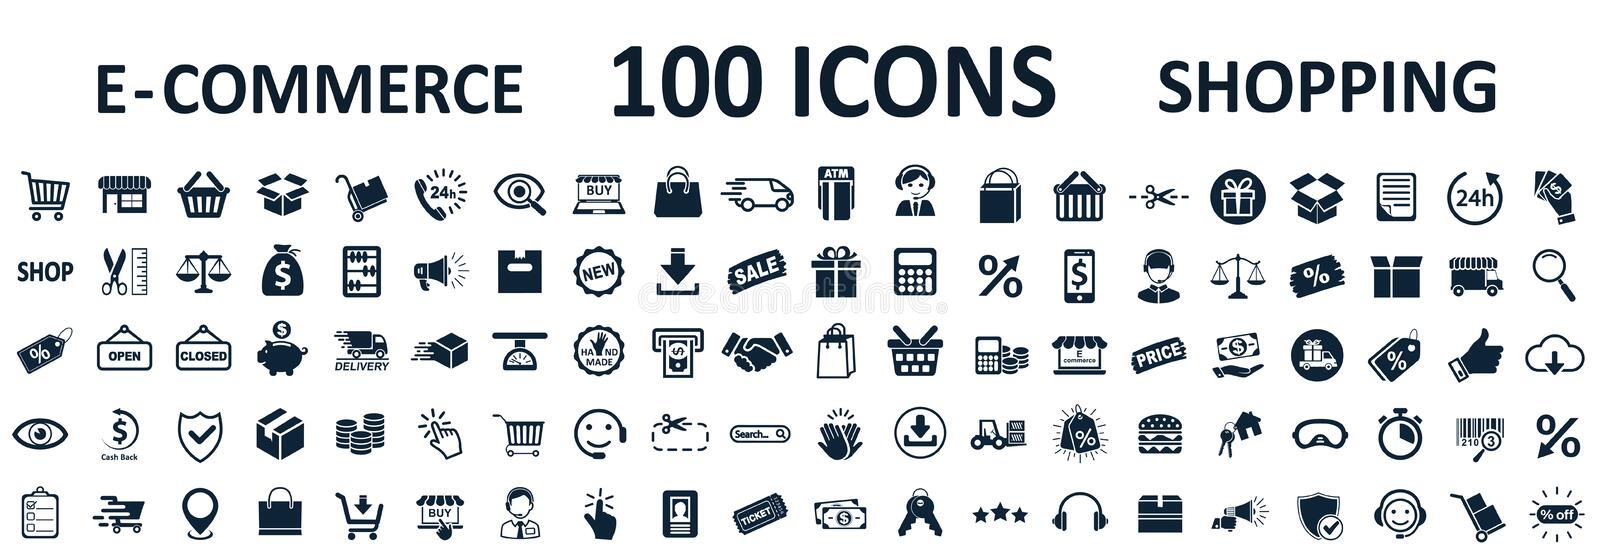 Shopping icons 100, set shop sign e-commerce for web development apps and websites - vector royalty free illustration